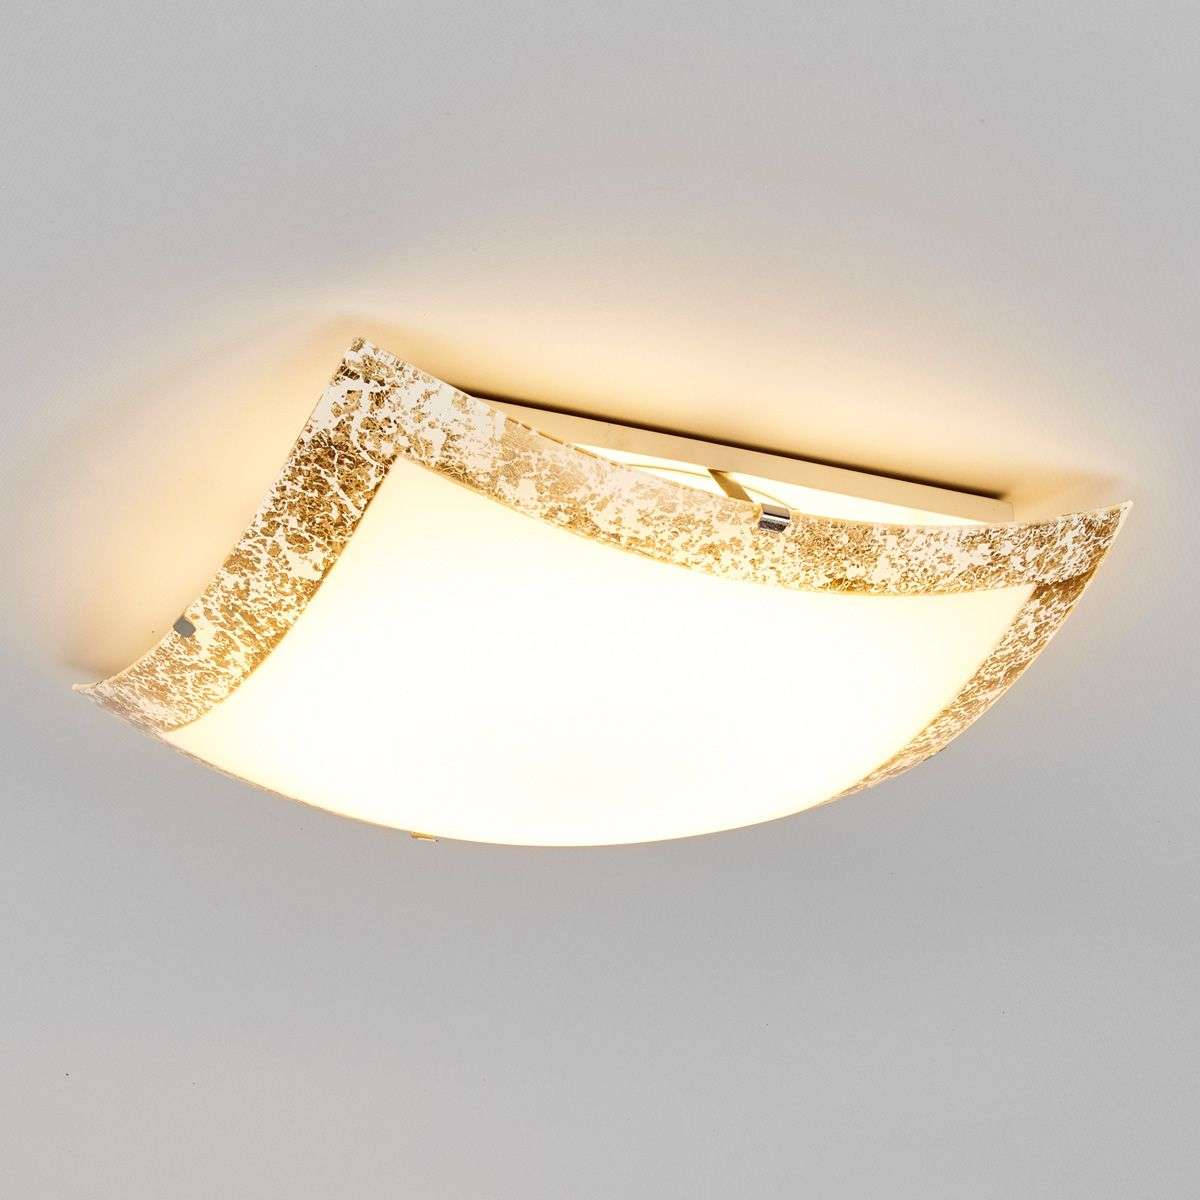 Mirella LED ceiling light with a gold border-9625035-31